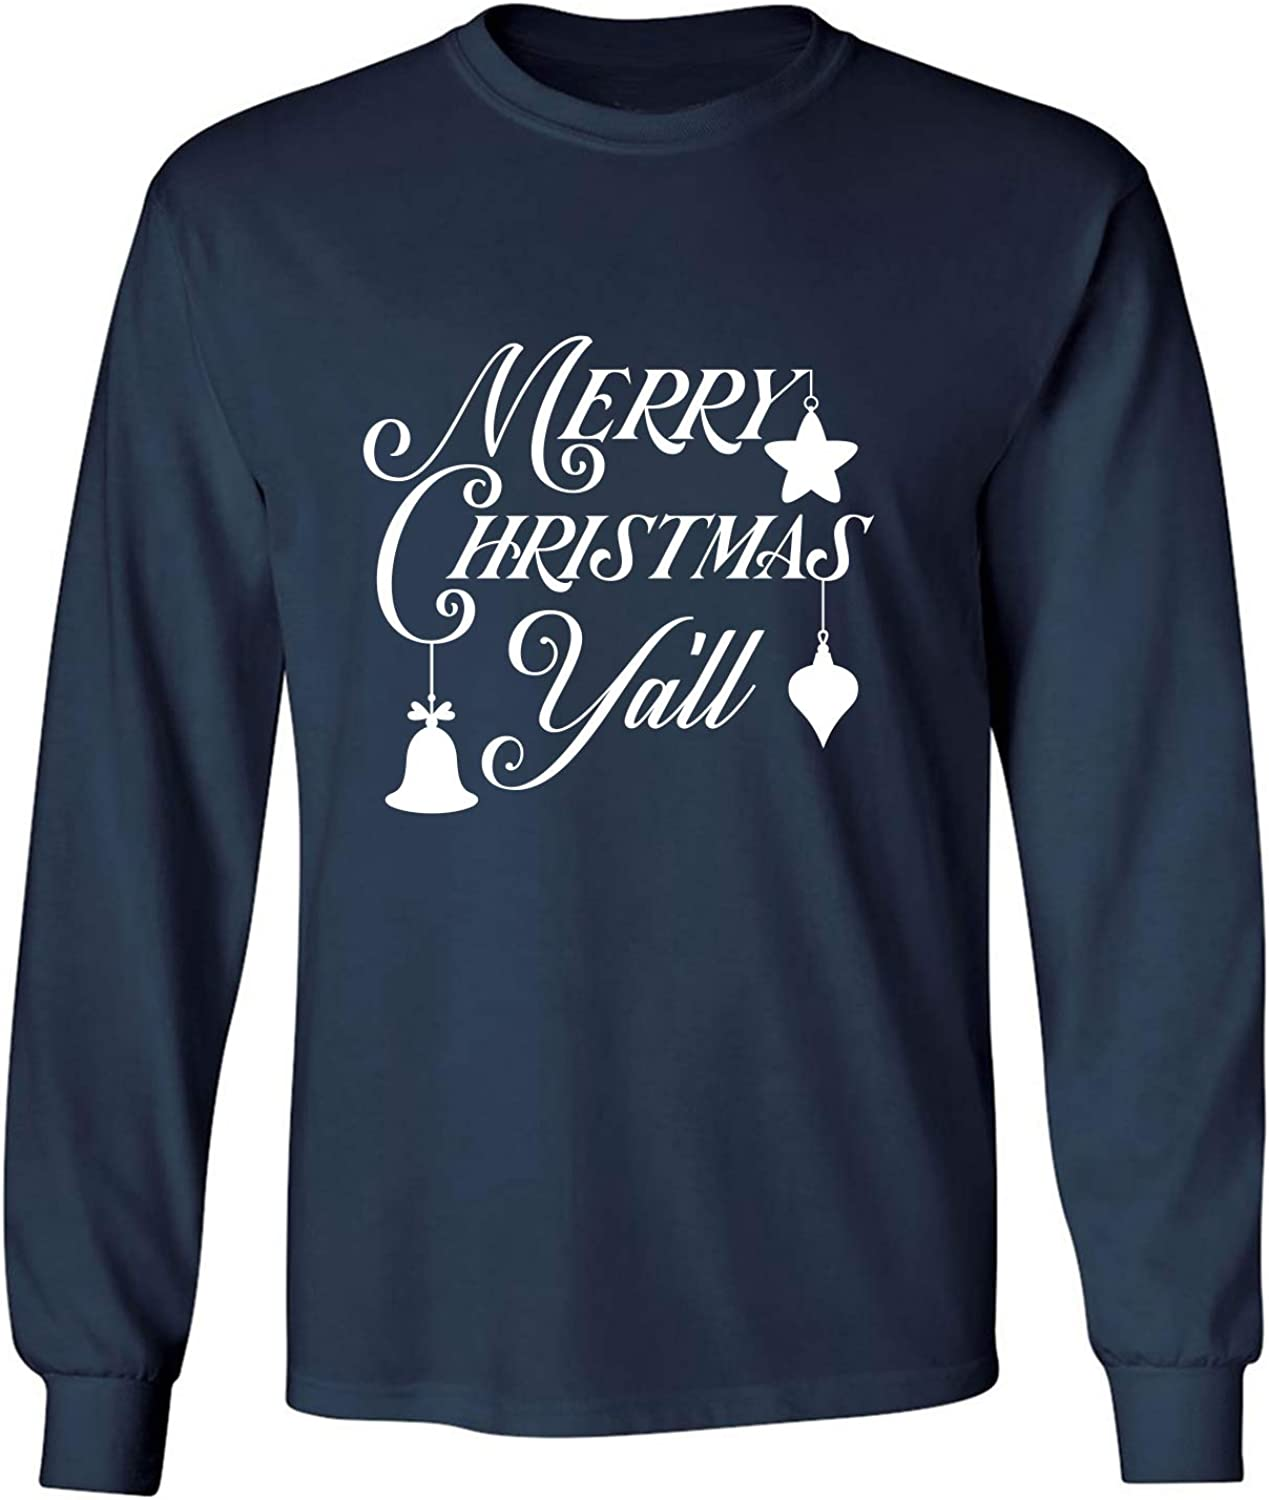 Merry Christmas Y'all Adult Long Sleeve T-Shirt in Navy - XXXX-Large